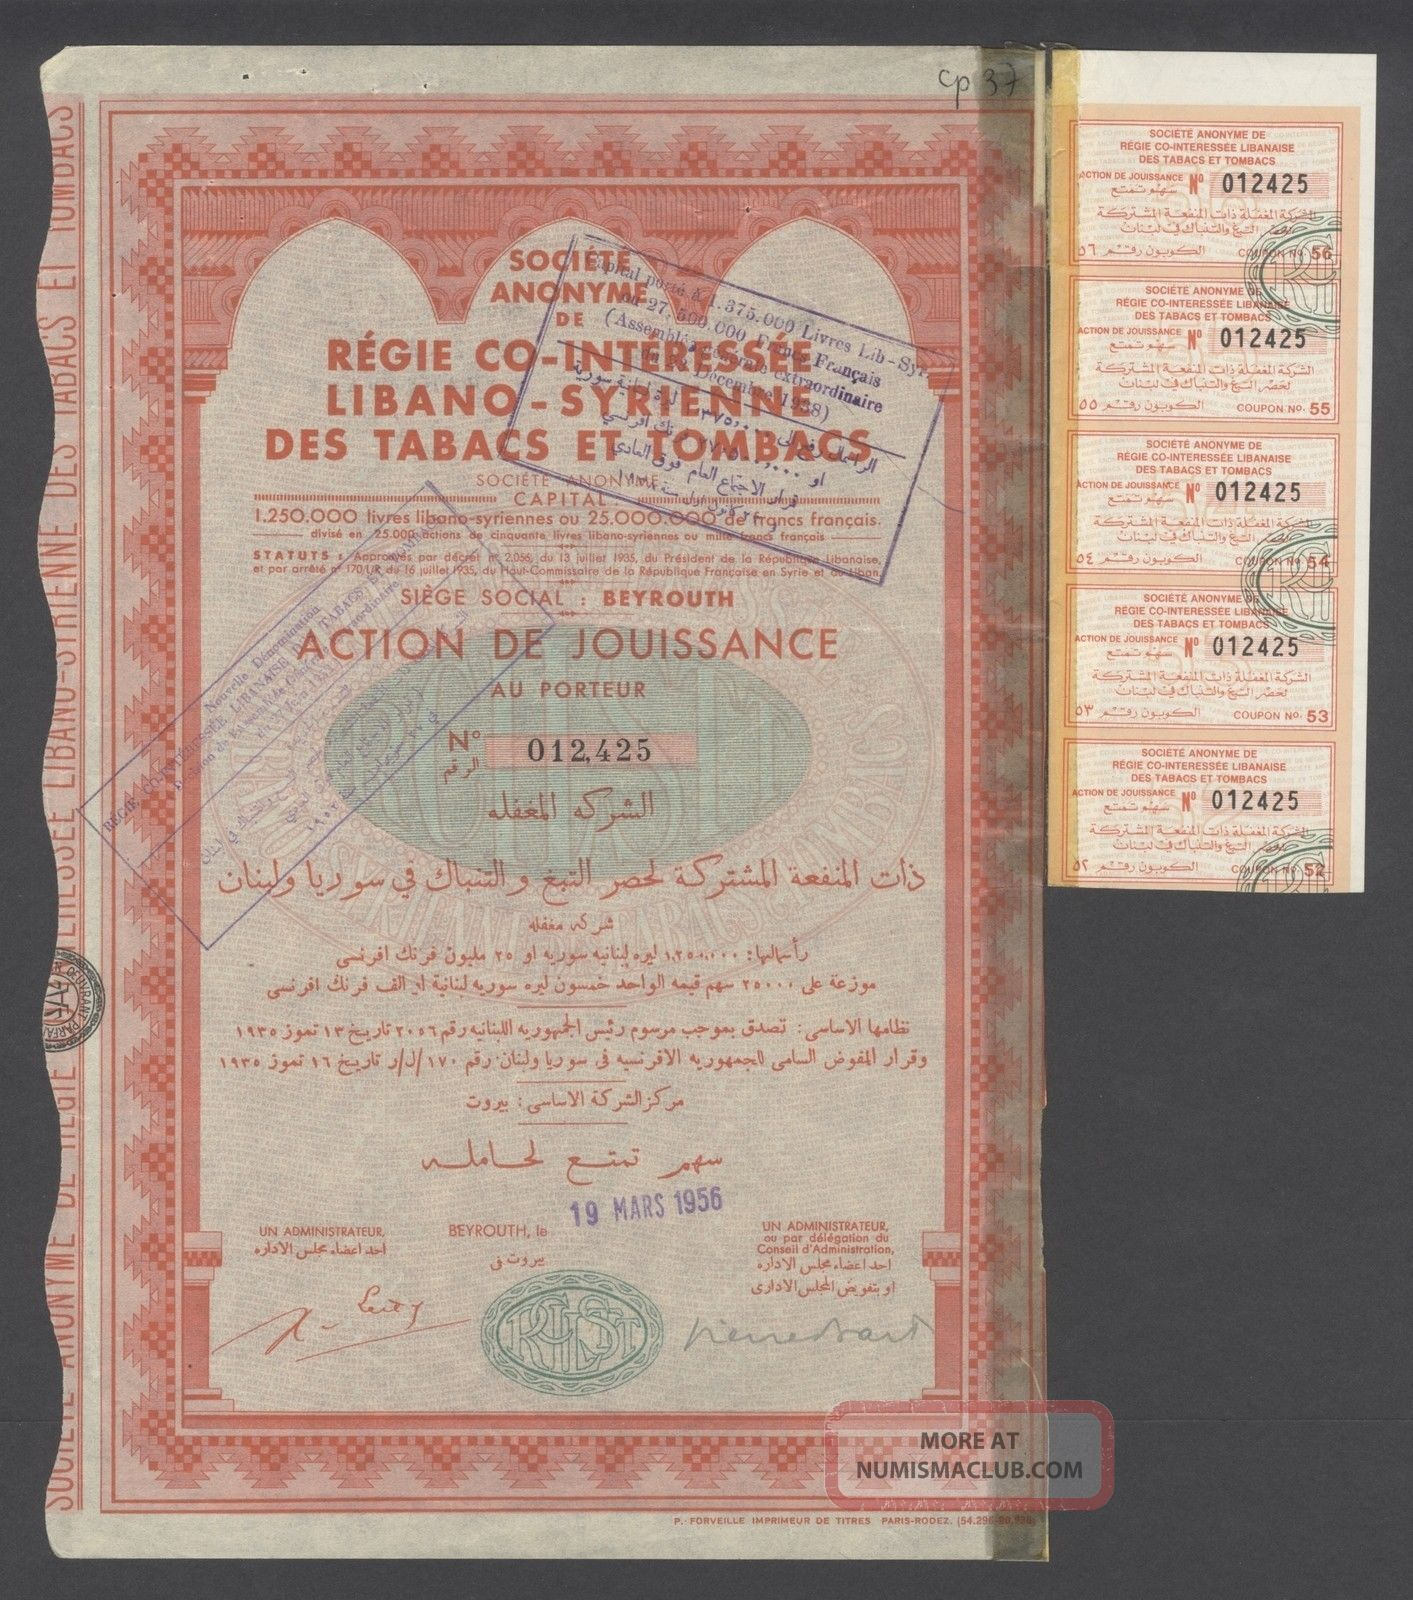 Liban Lebanon 1956 Bond Regie Libanaise Des Tabacs Et Tombacs. .  B1577 World photo